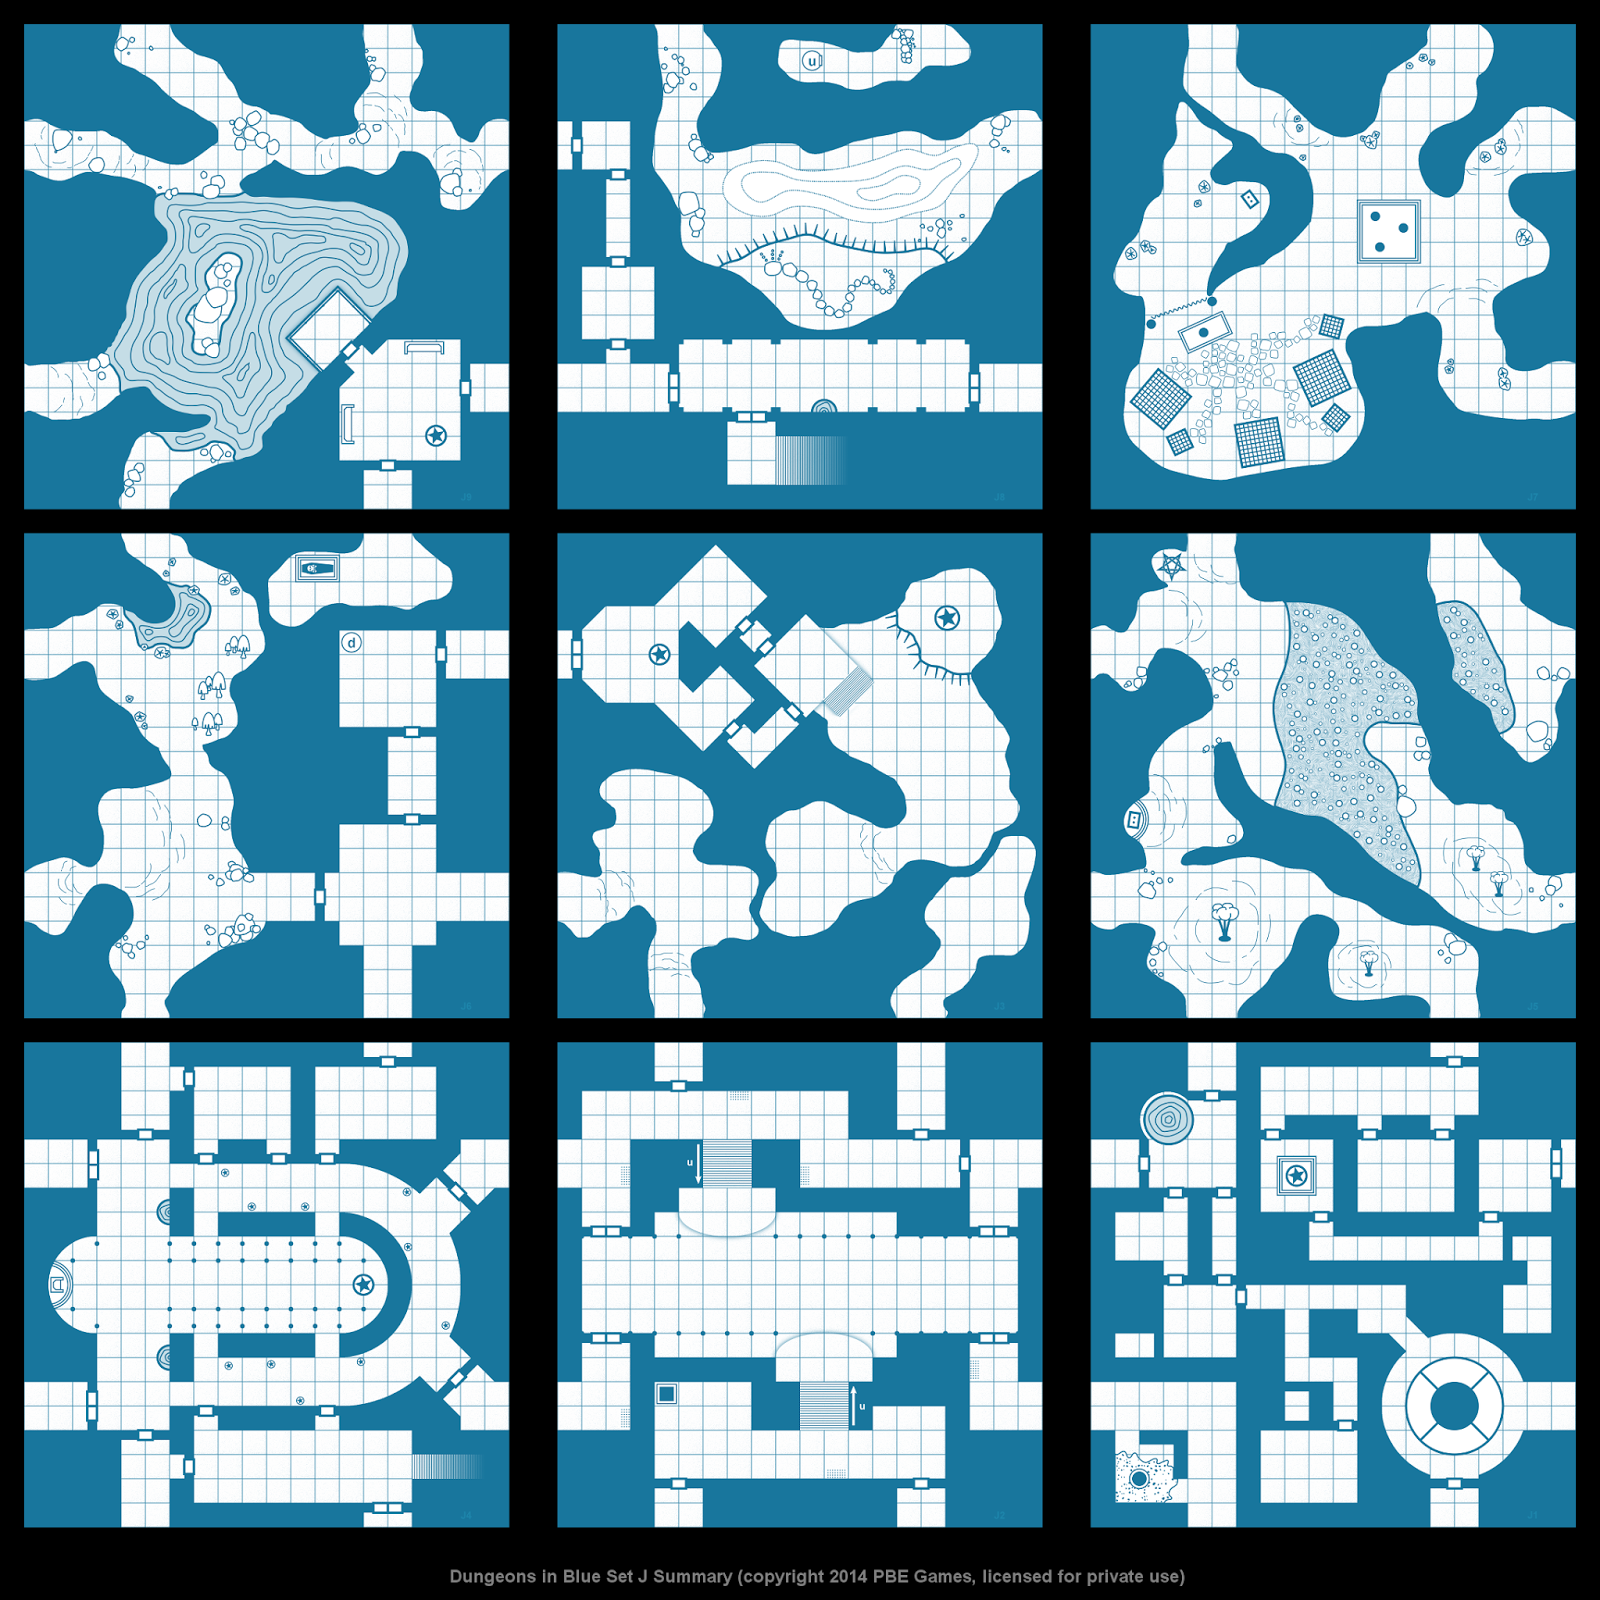 Dungeons in Blue - New Tiles